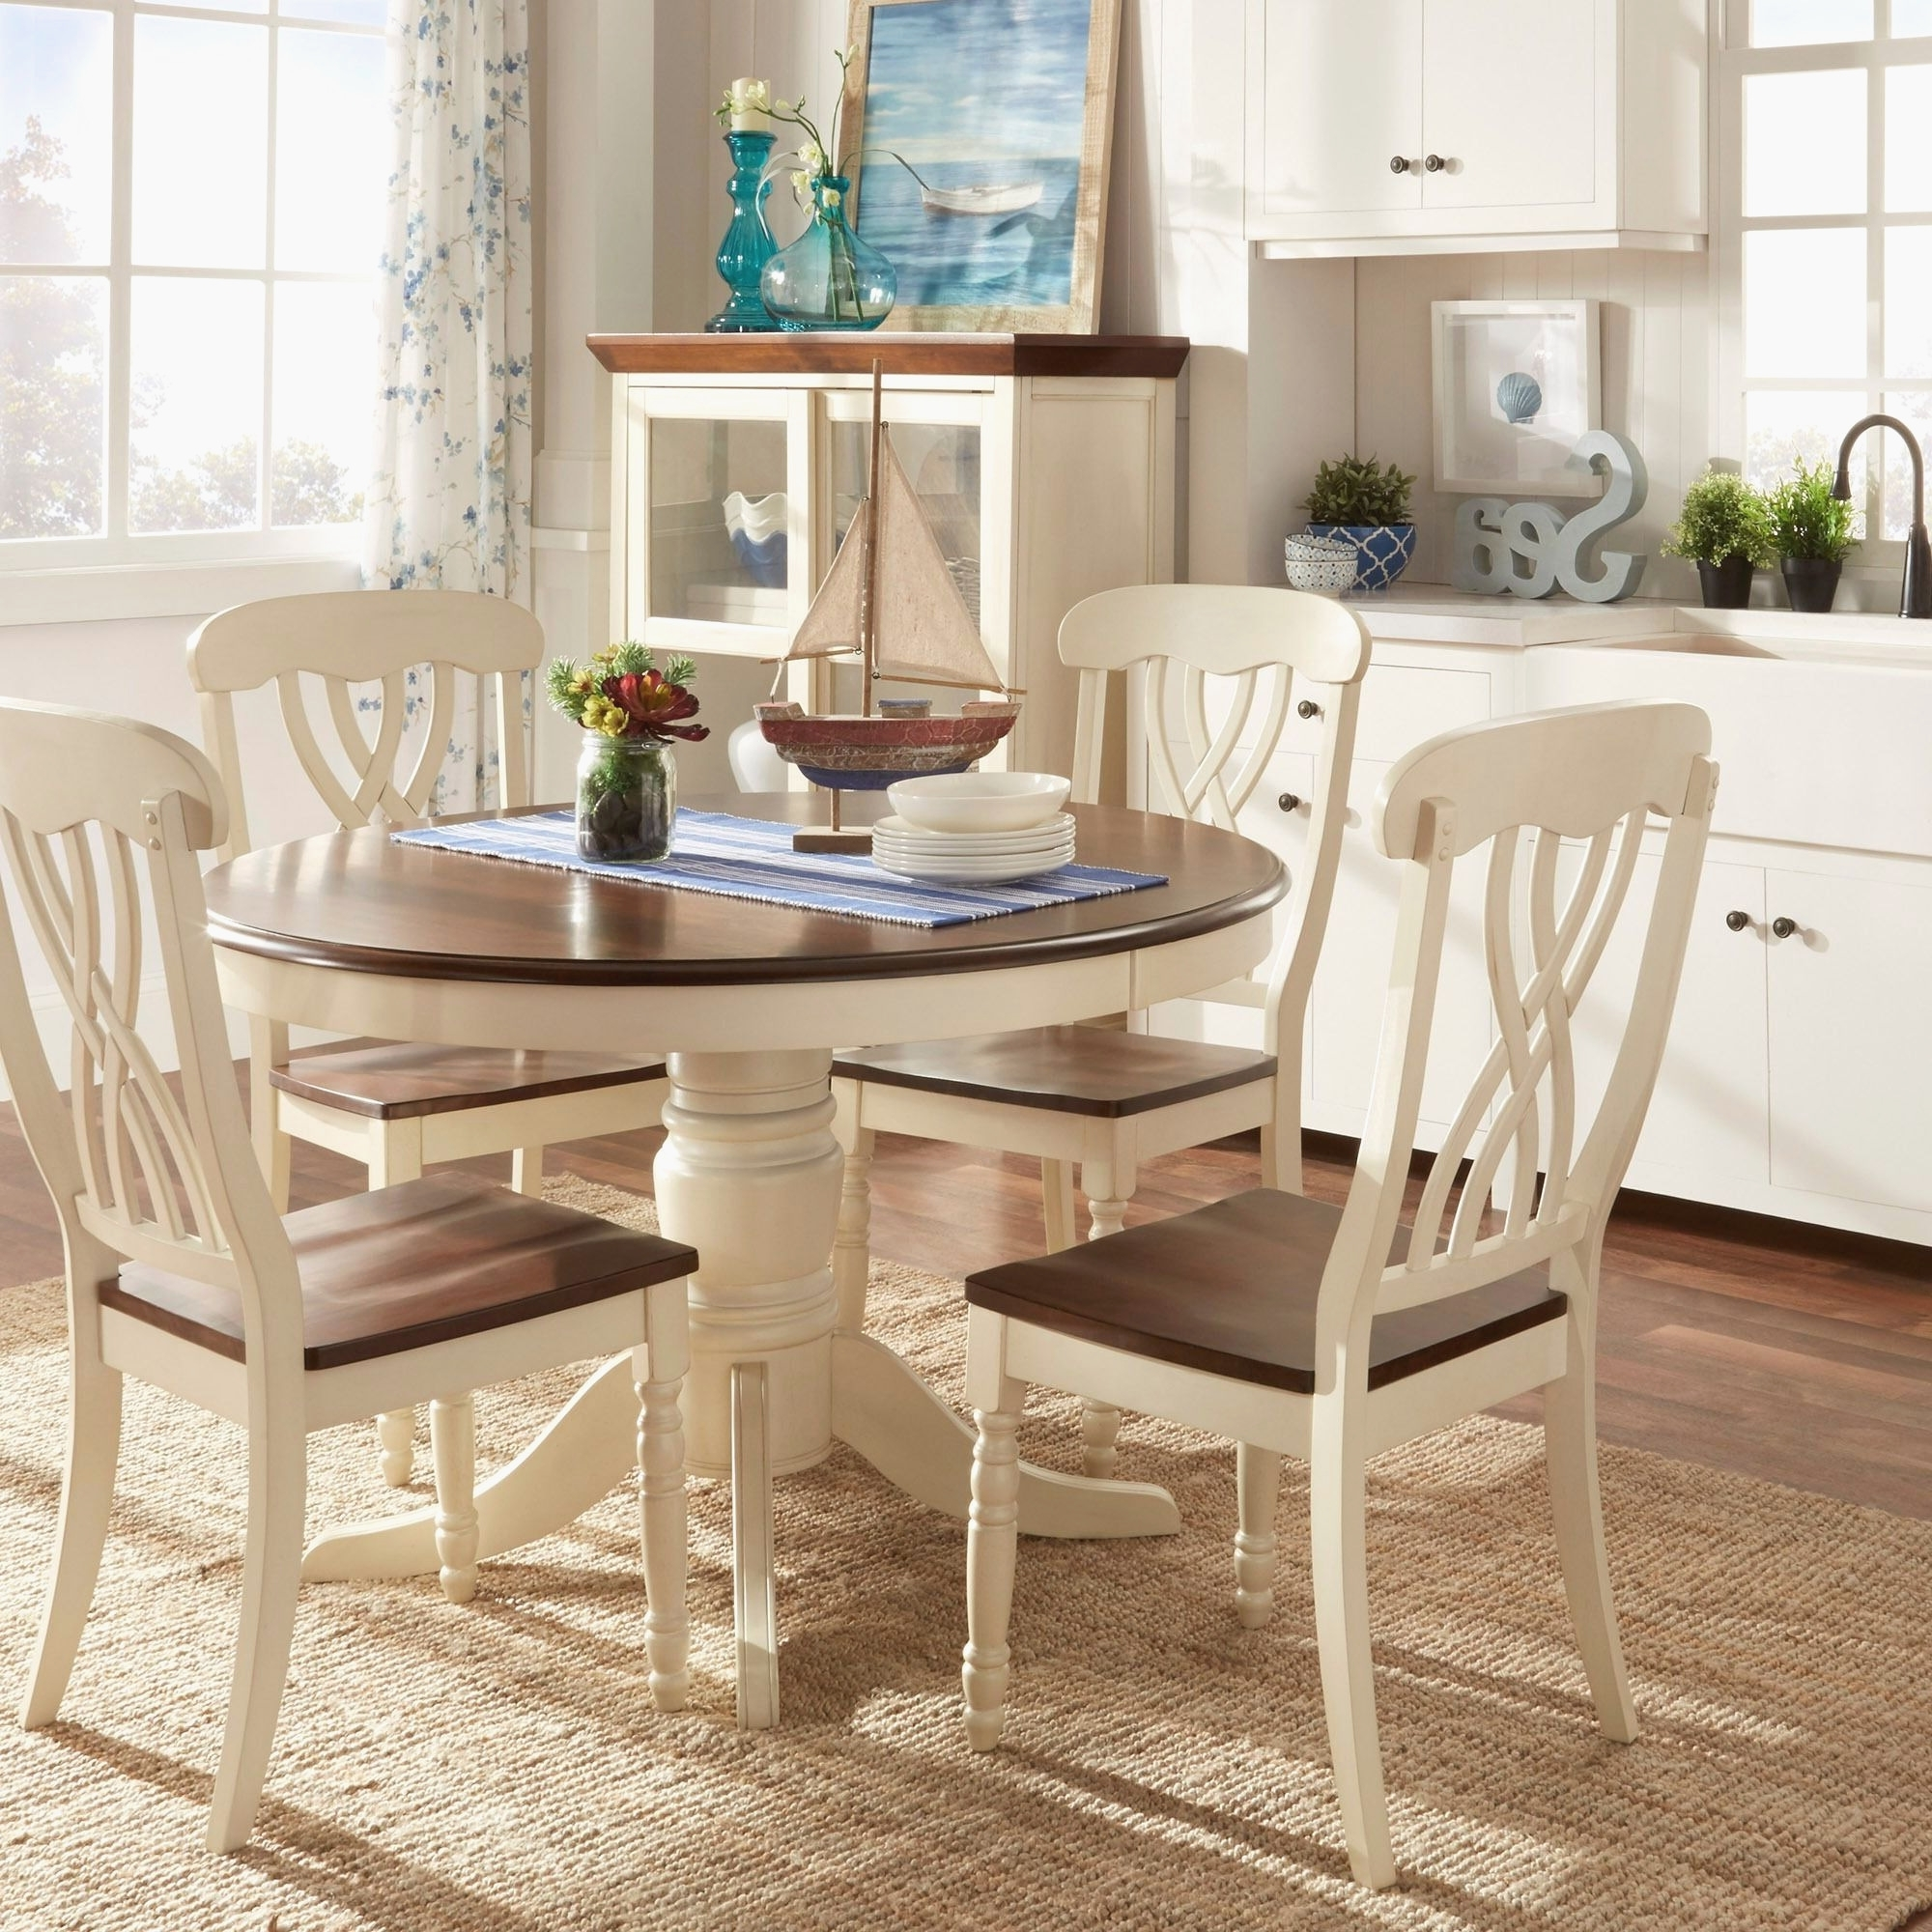 Popular 72 Inch Round Modern Dining Table Best Of Dining Room Table And Pertaining To Non Wood Dining Tables (View 22 of 25)